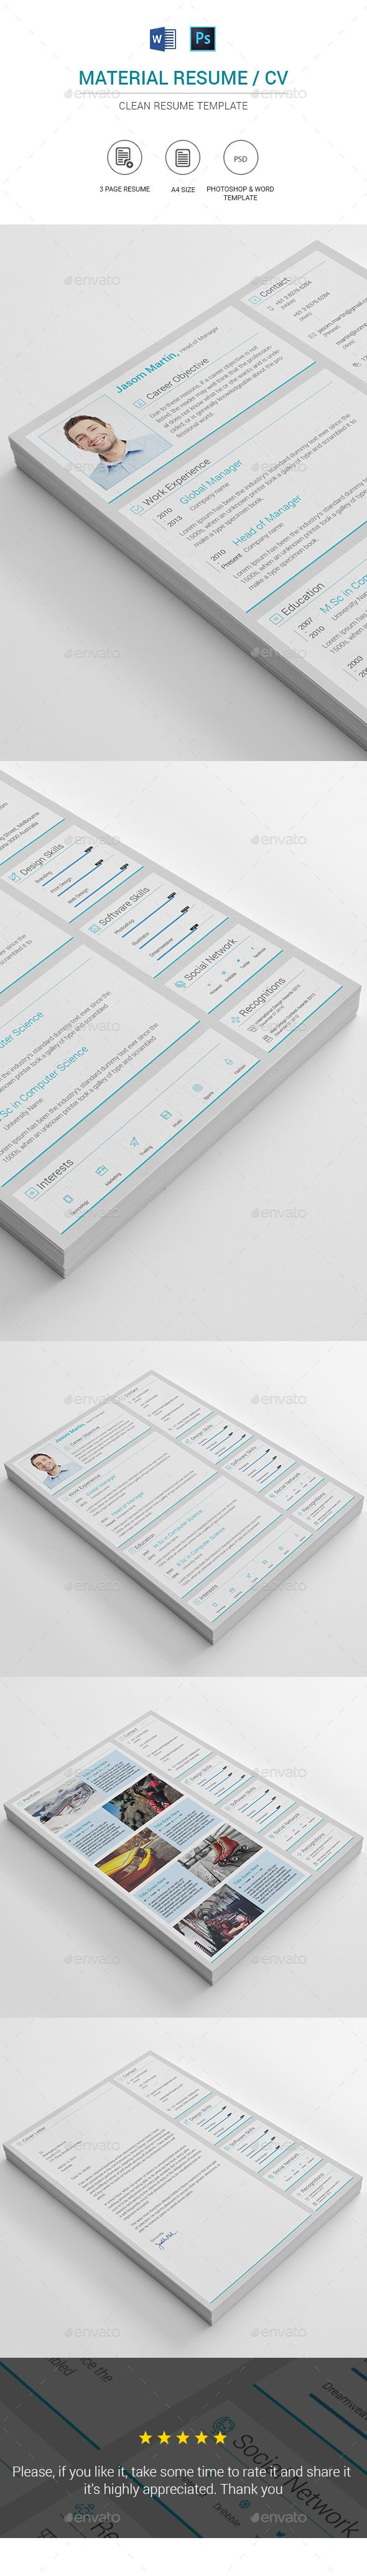 Inventory Specialist Resume  Best Cv Resume Templates Images On Pinterest  Resume  Hair Stylist Resume Sample with Work Skills For Resume Word Resume Resume Builder Reviews Excel